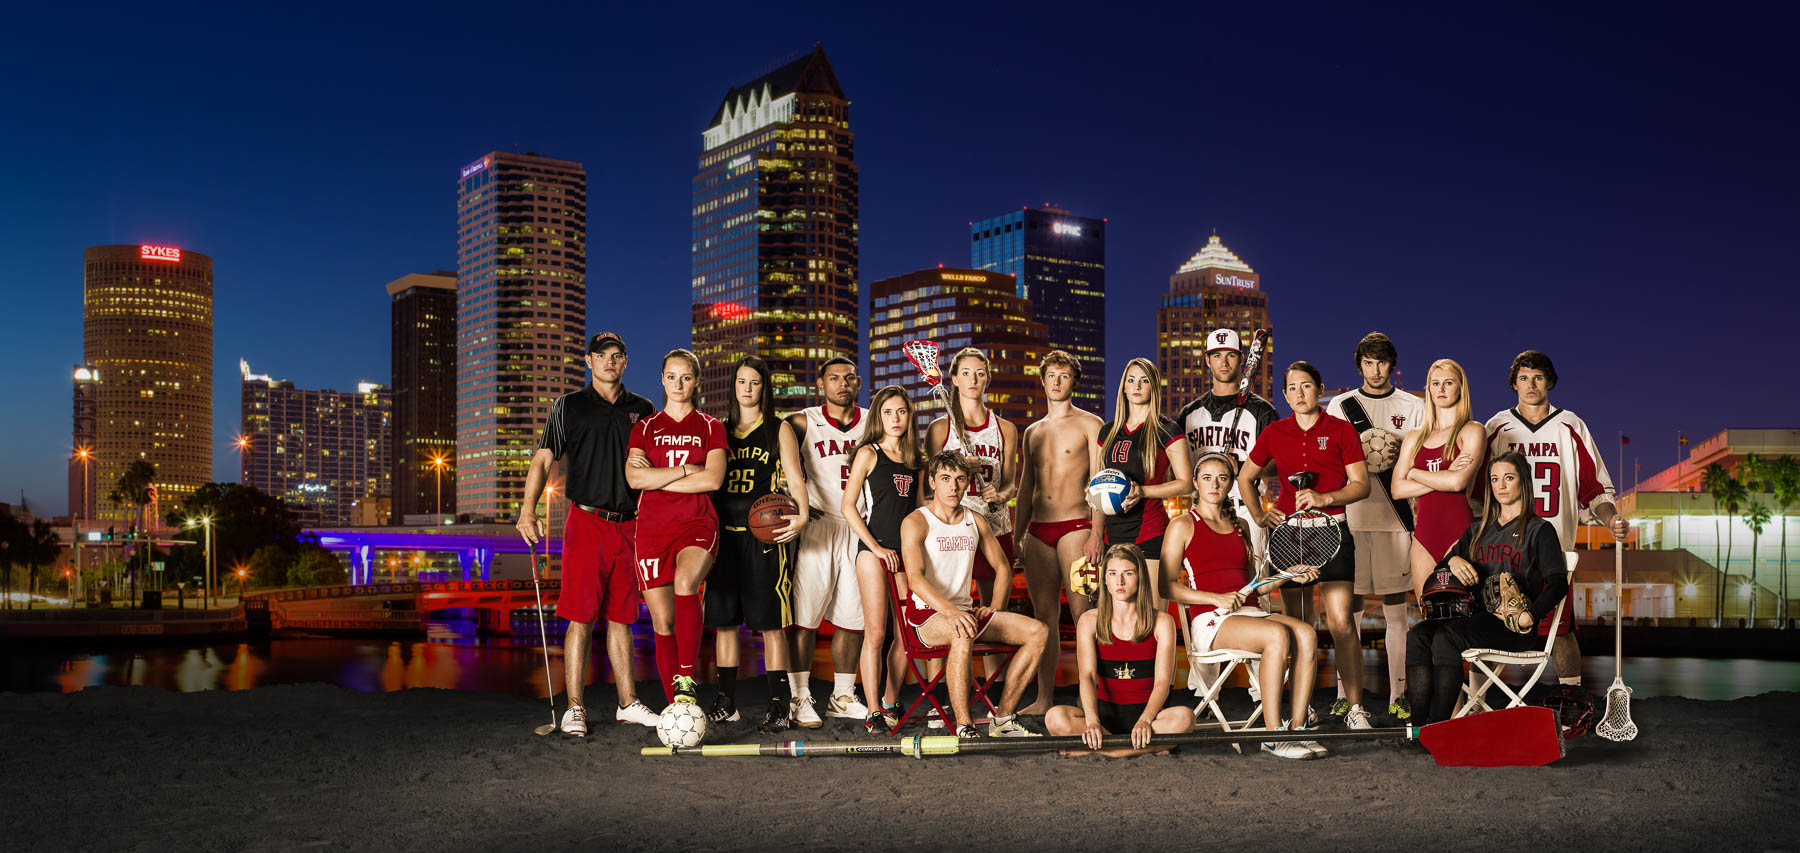 Athletes - Captains of University of Tampa athletic teams